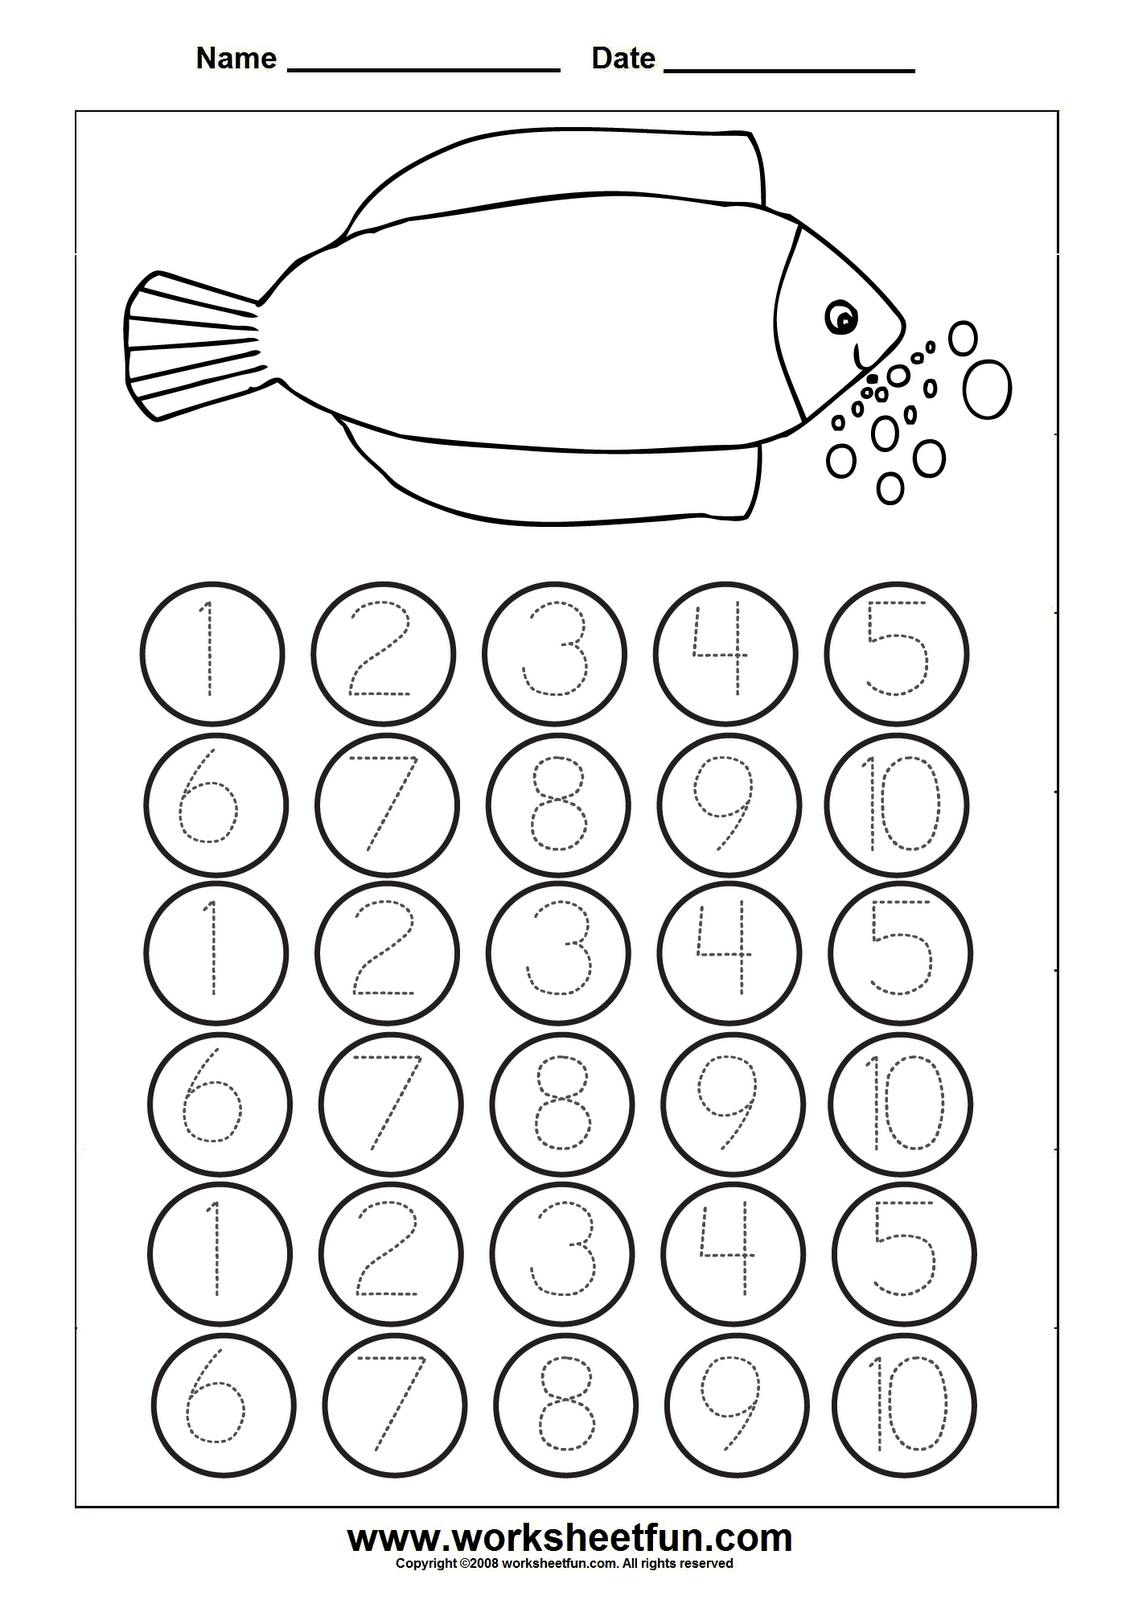 math worksheet : wel e  math : Number Worksheets For Kindergarten 1 20